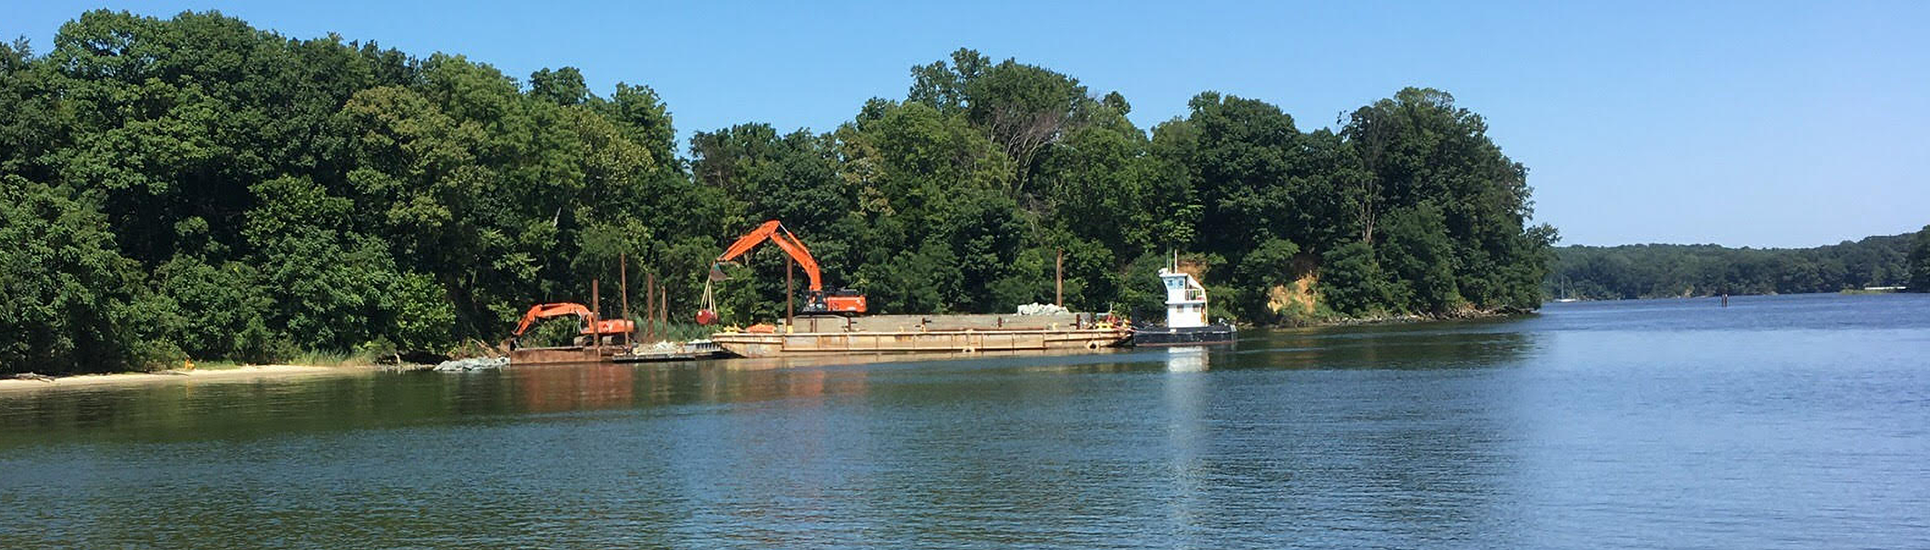 Two excavator machines work on building a shoreline project. A barge holding materials is in the water offshore.